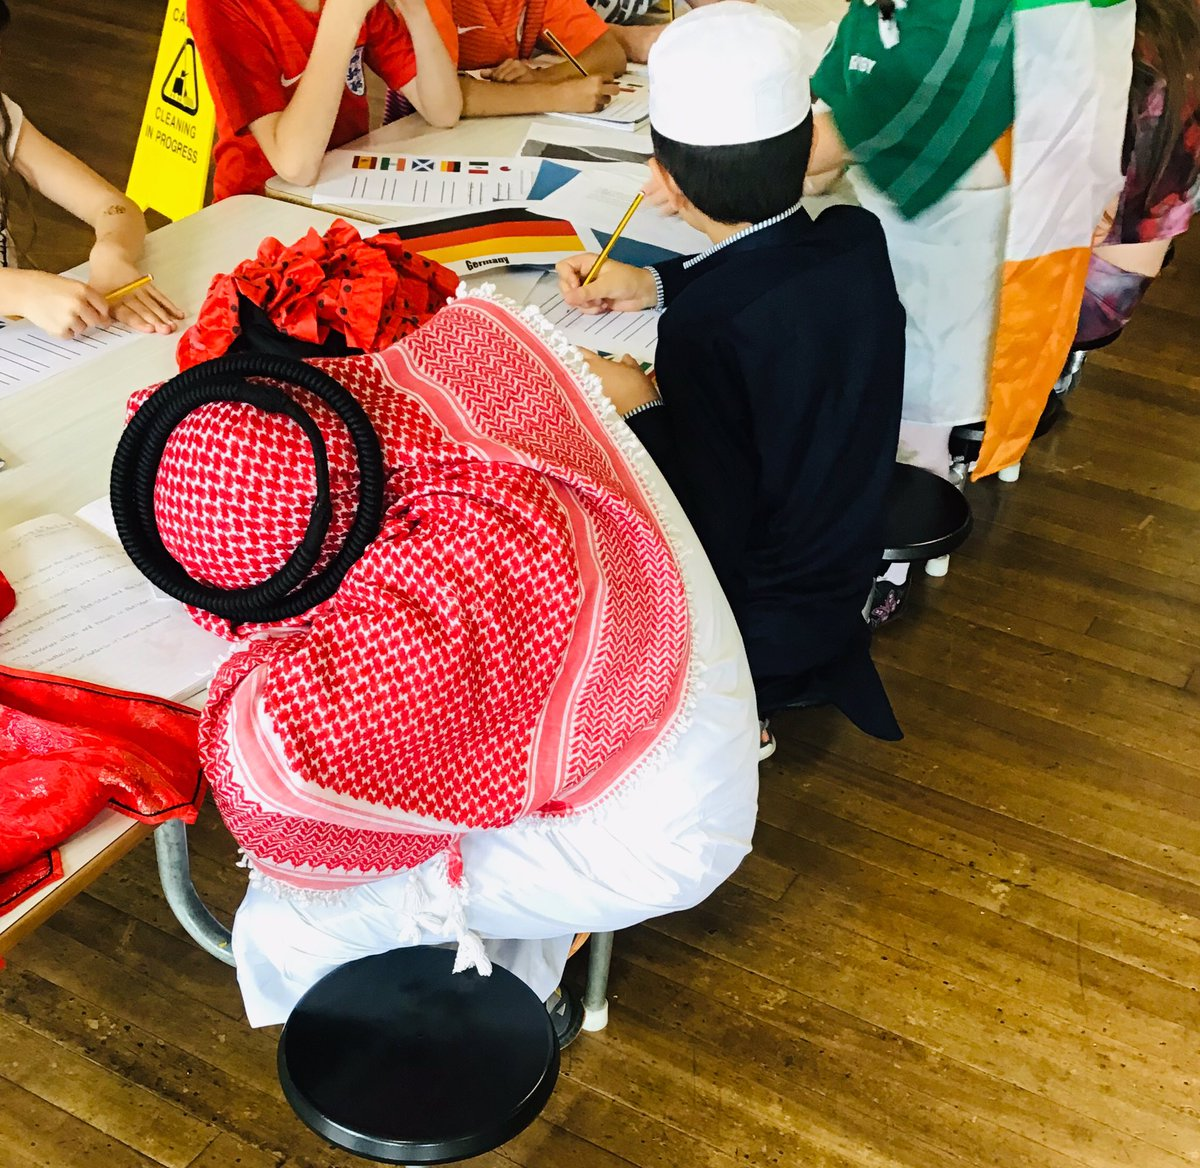 Year 4's 'Culture Day' at @NorthManorAcad - so impressed with the high level of home learning and contributions.